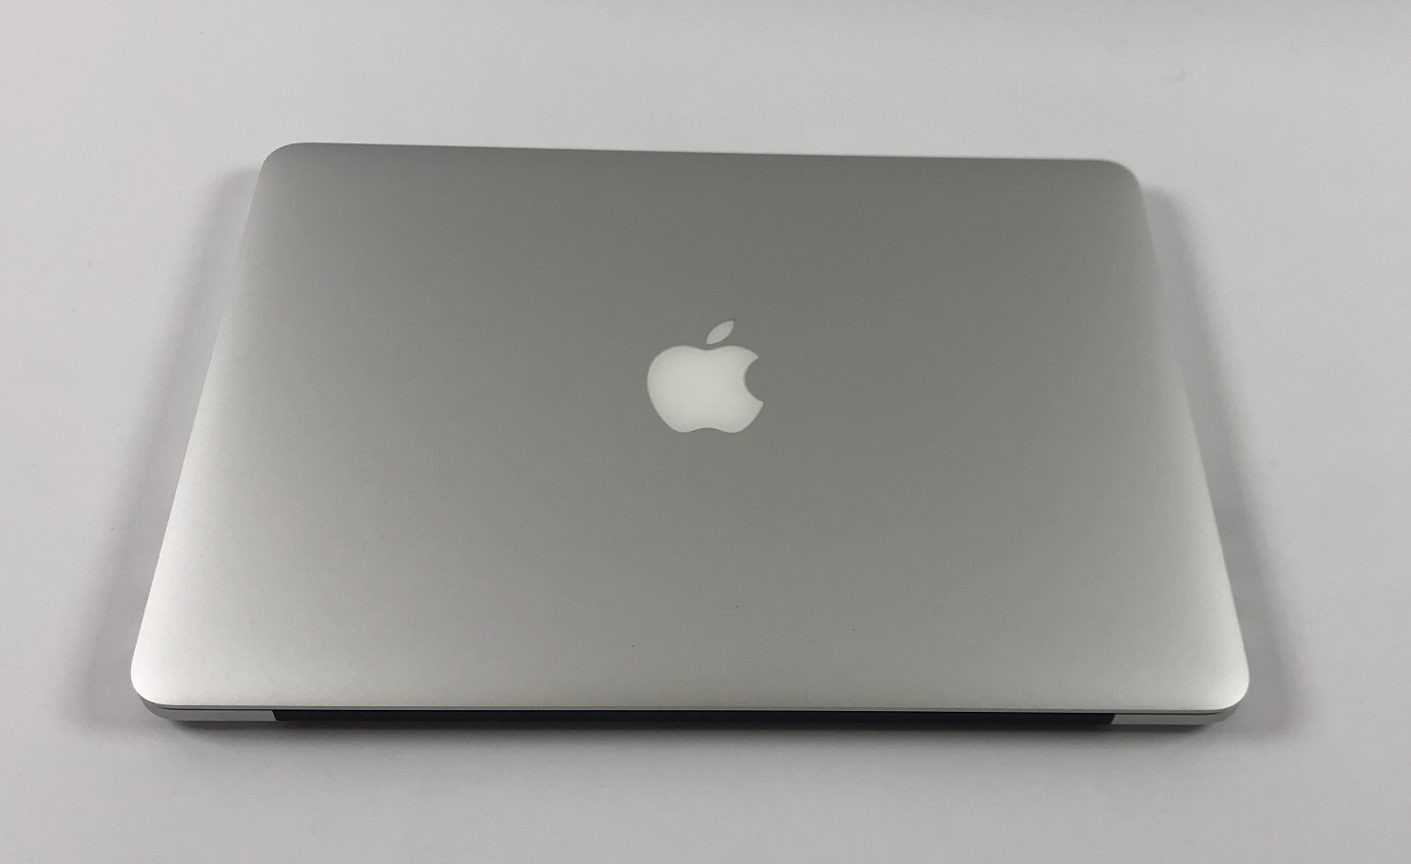 "MacBook Pro Retina 13"" Early 2015 (Intel Core i5 2.7 GHz 16 GB RAM 256 GB SSD), Intel Core i5 2.7 GHz, 16 GB RAM, 256 GB SSD, Kuva 2"